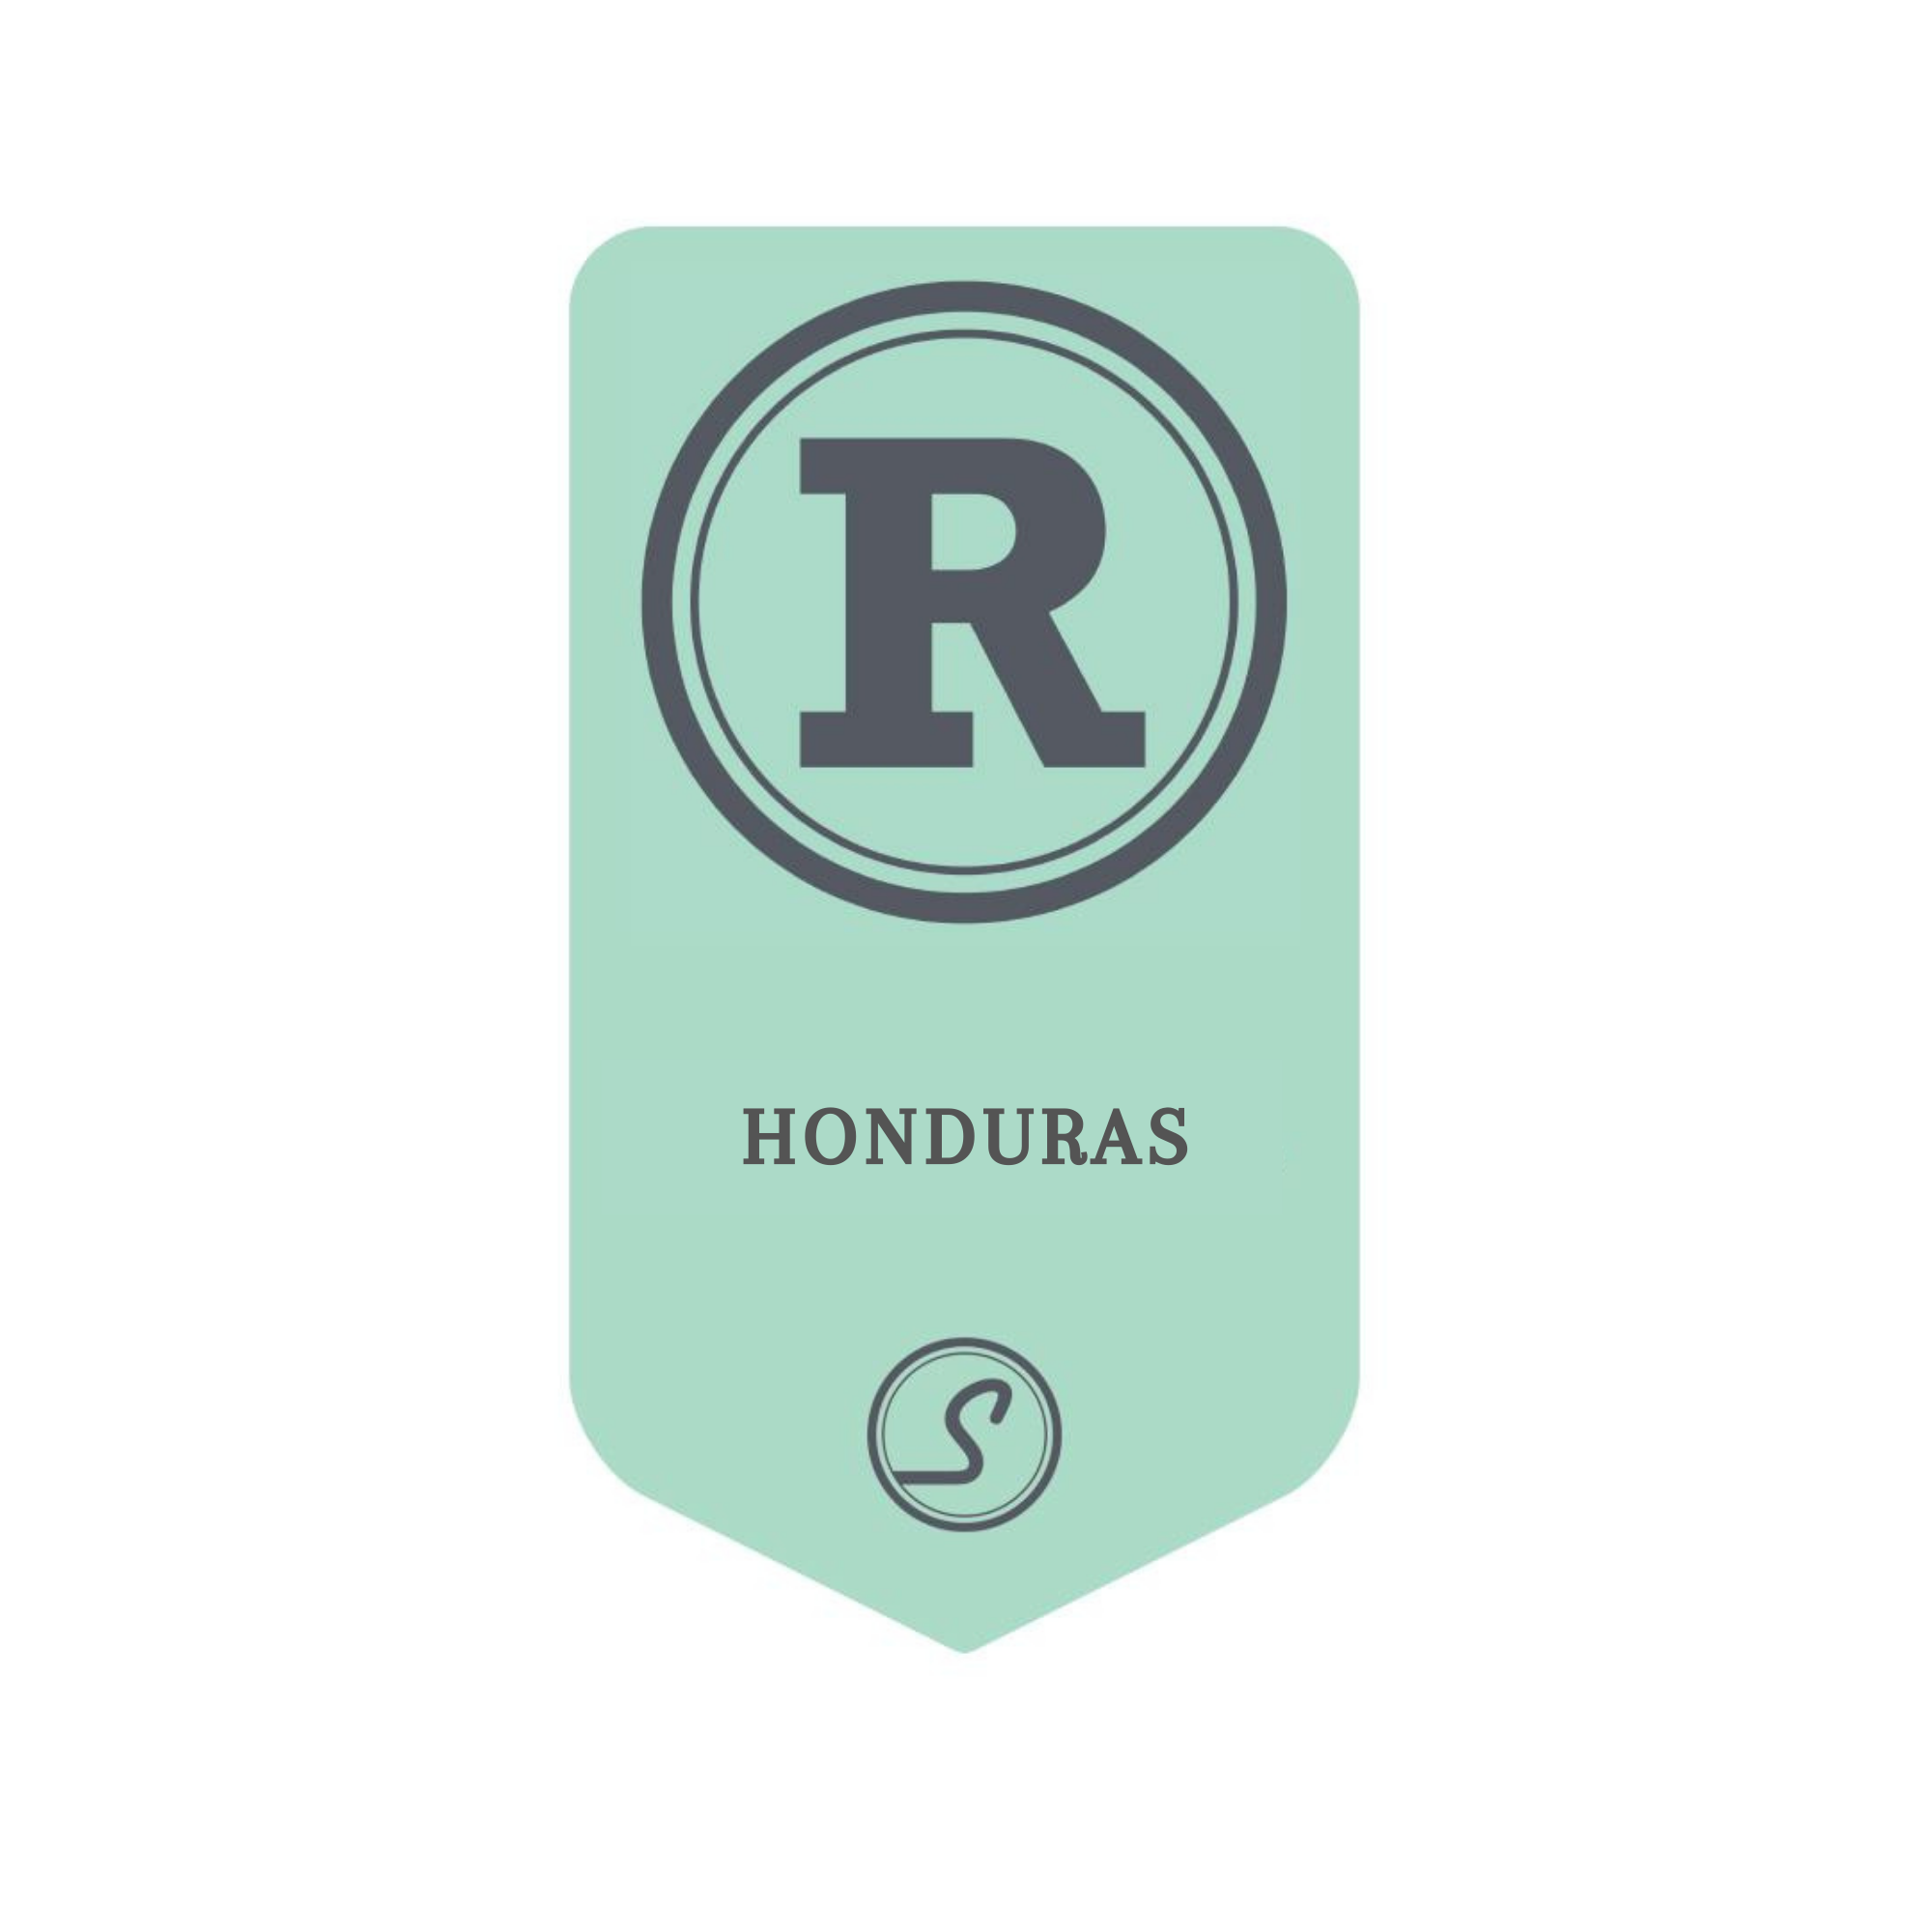 Honduras Rainforest Alliance